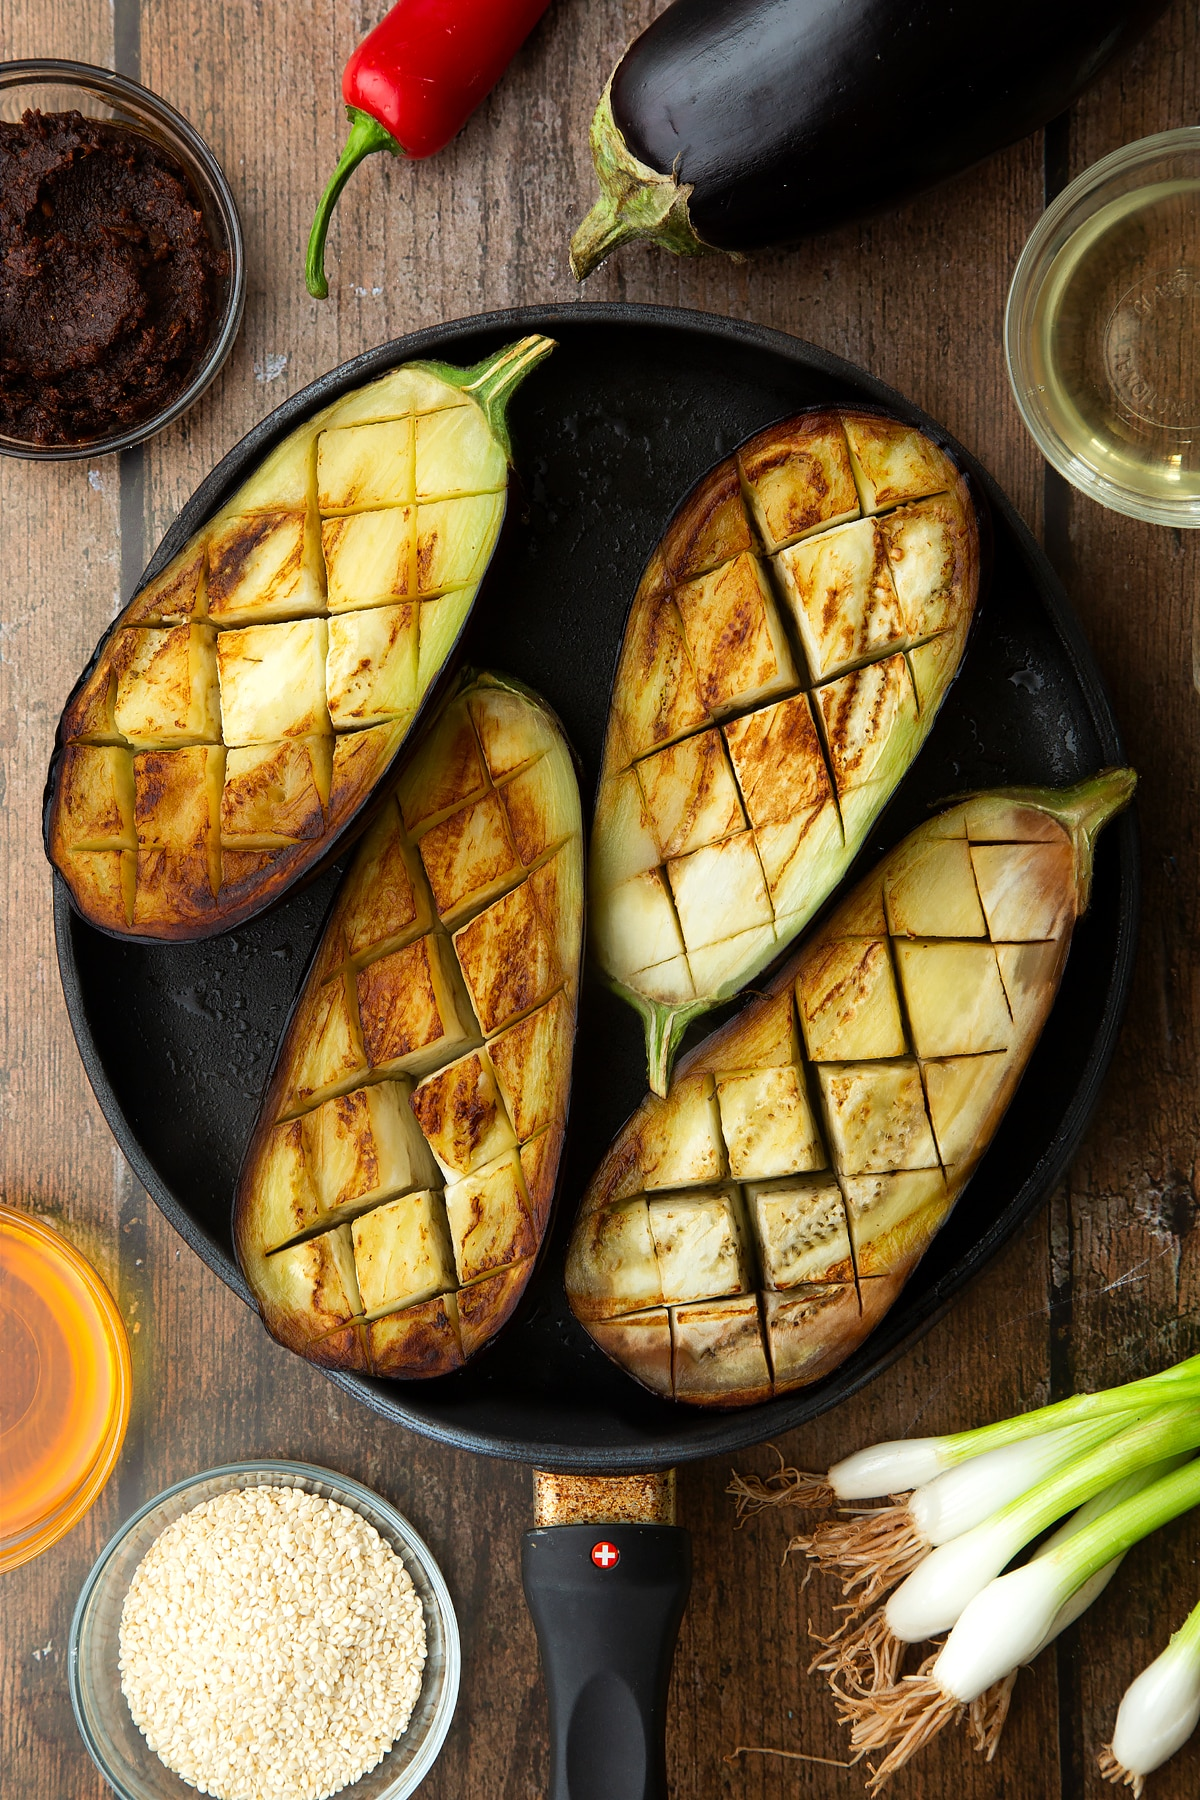 Scored and fried aubergine halves in a pan. Ingredients to make miso aubergine surround the pan.